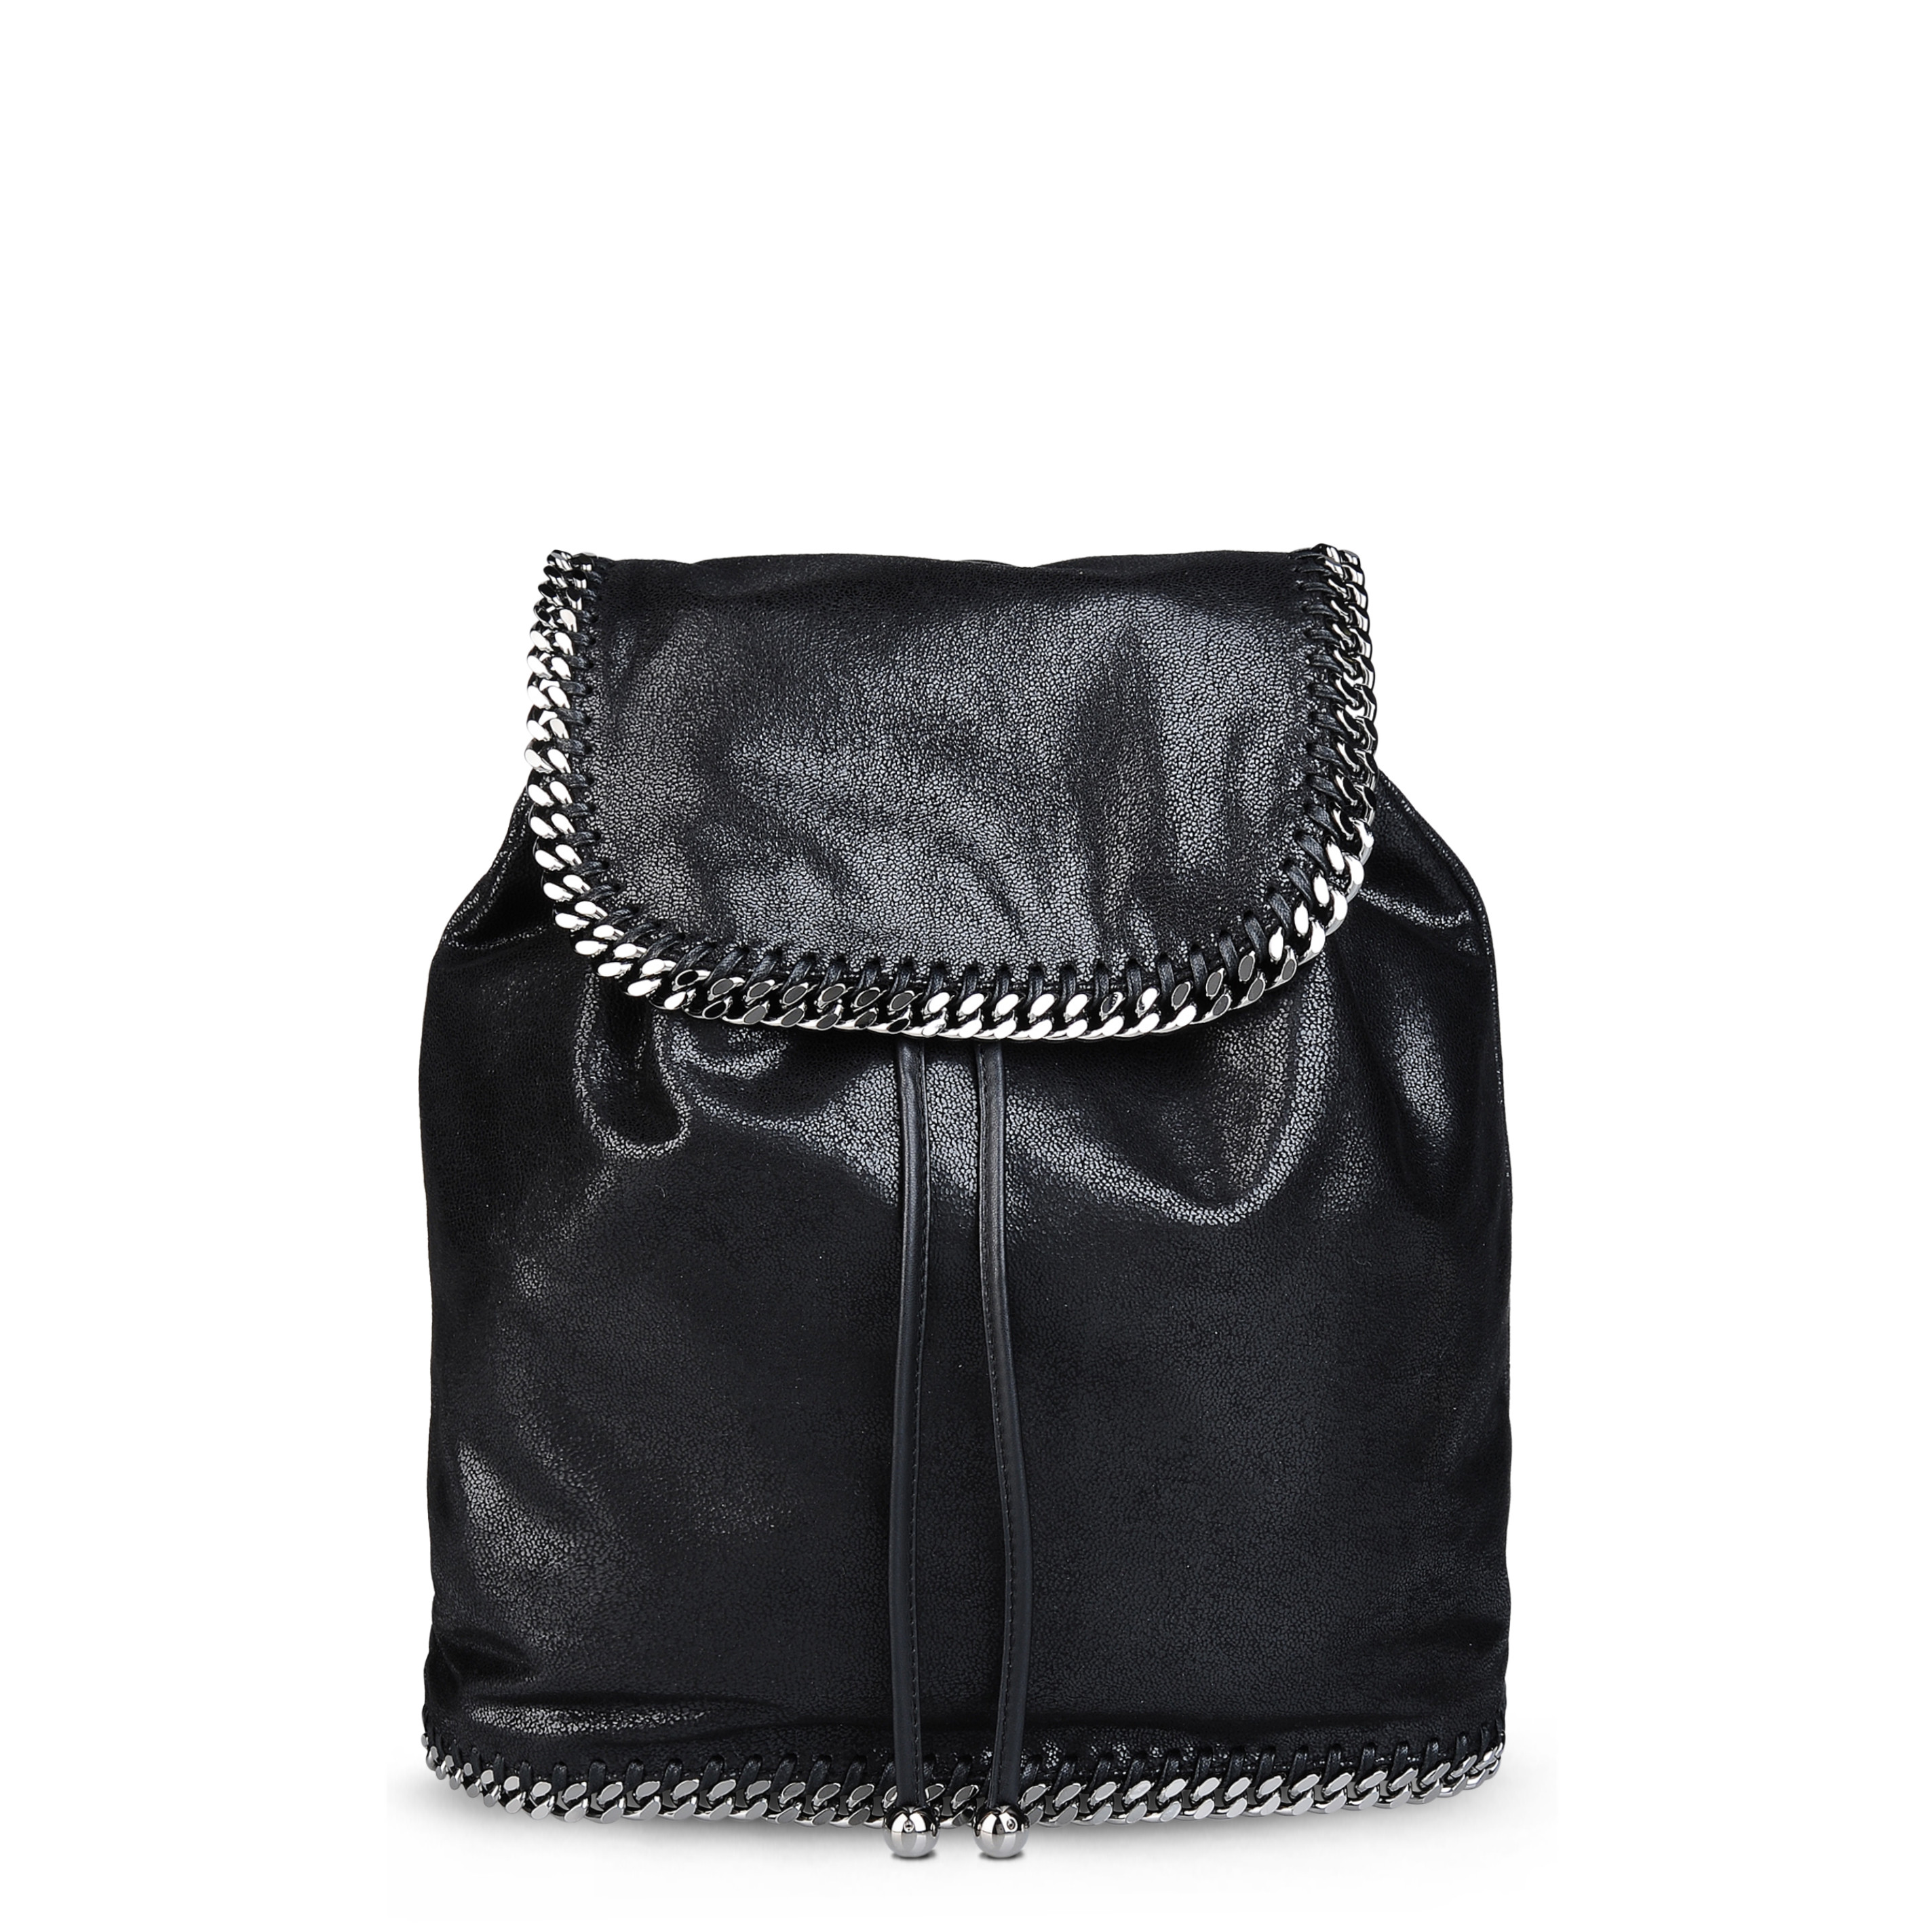 Falabella Stella Mccartney Stella Mccartney Shoulder Bag